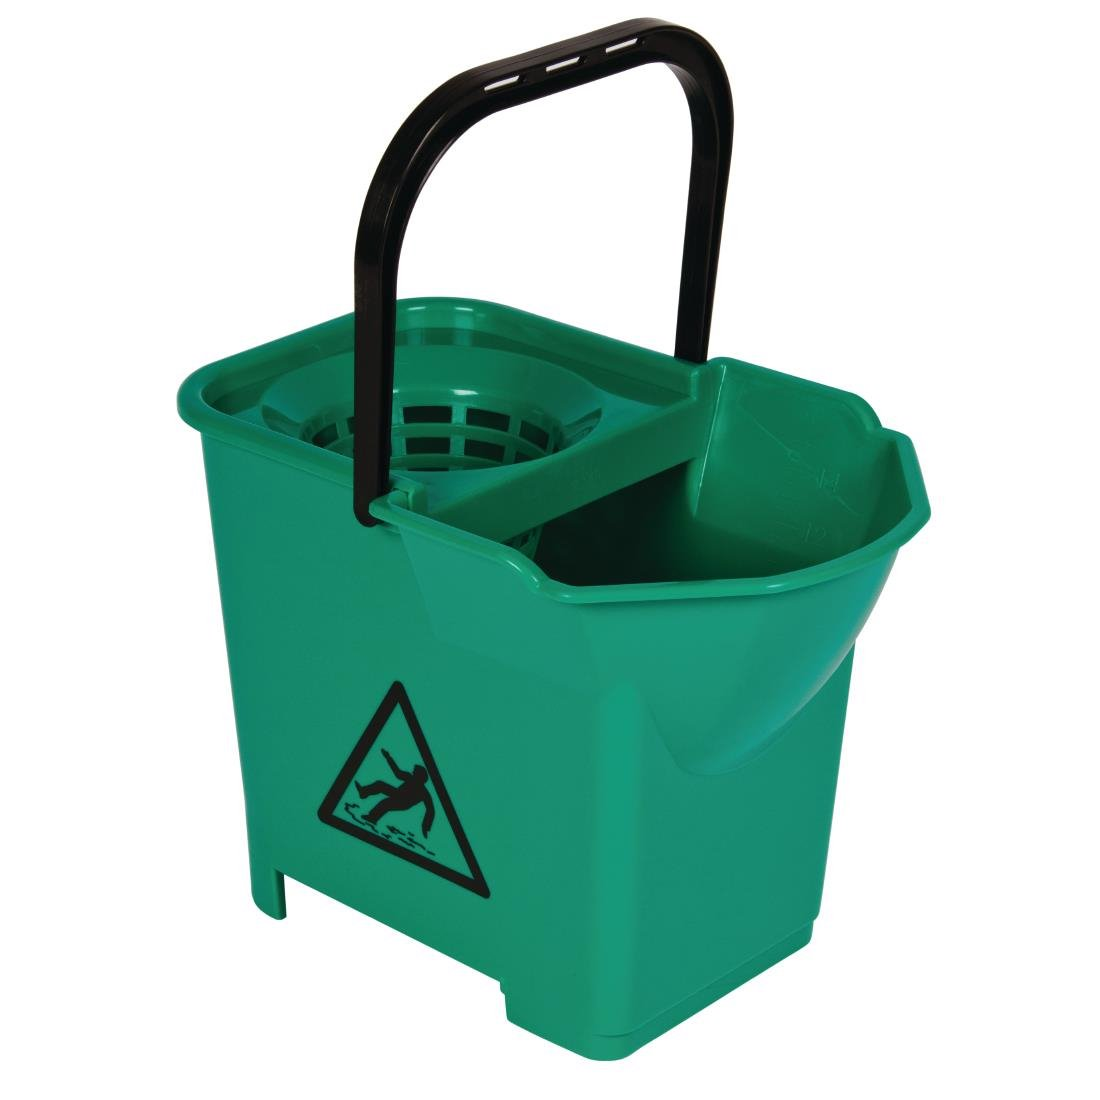 Jantex Colour Coded Mop Bucket Green